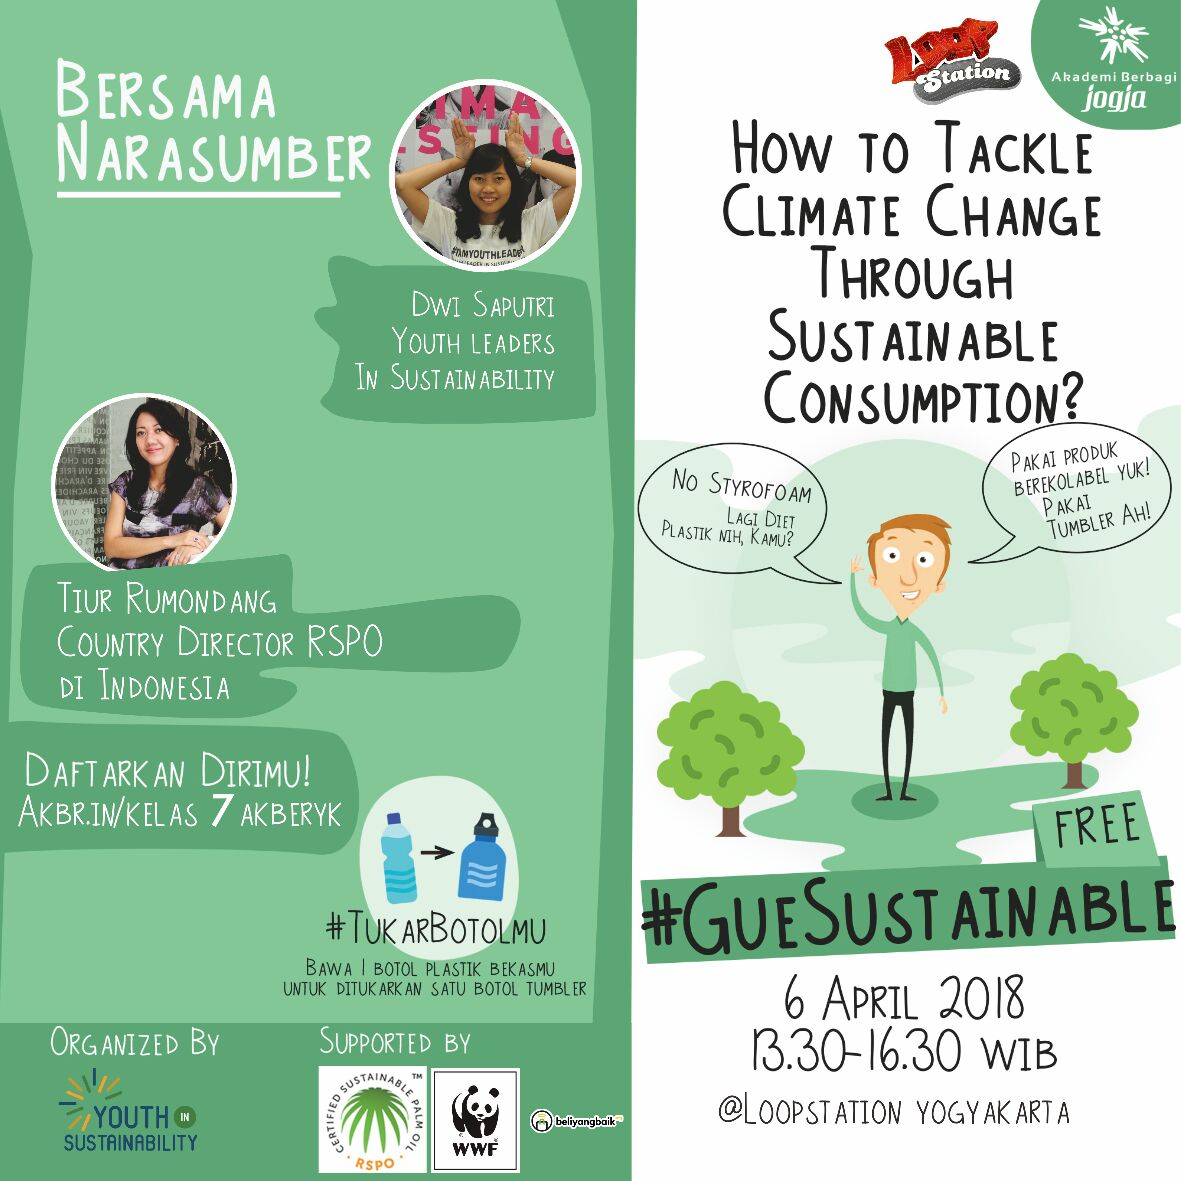 Jogja: How To Tackle Climate Change Through Sustainable Consumption